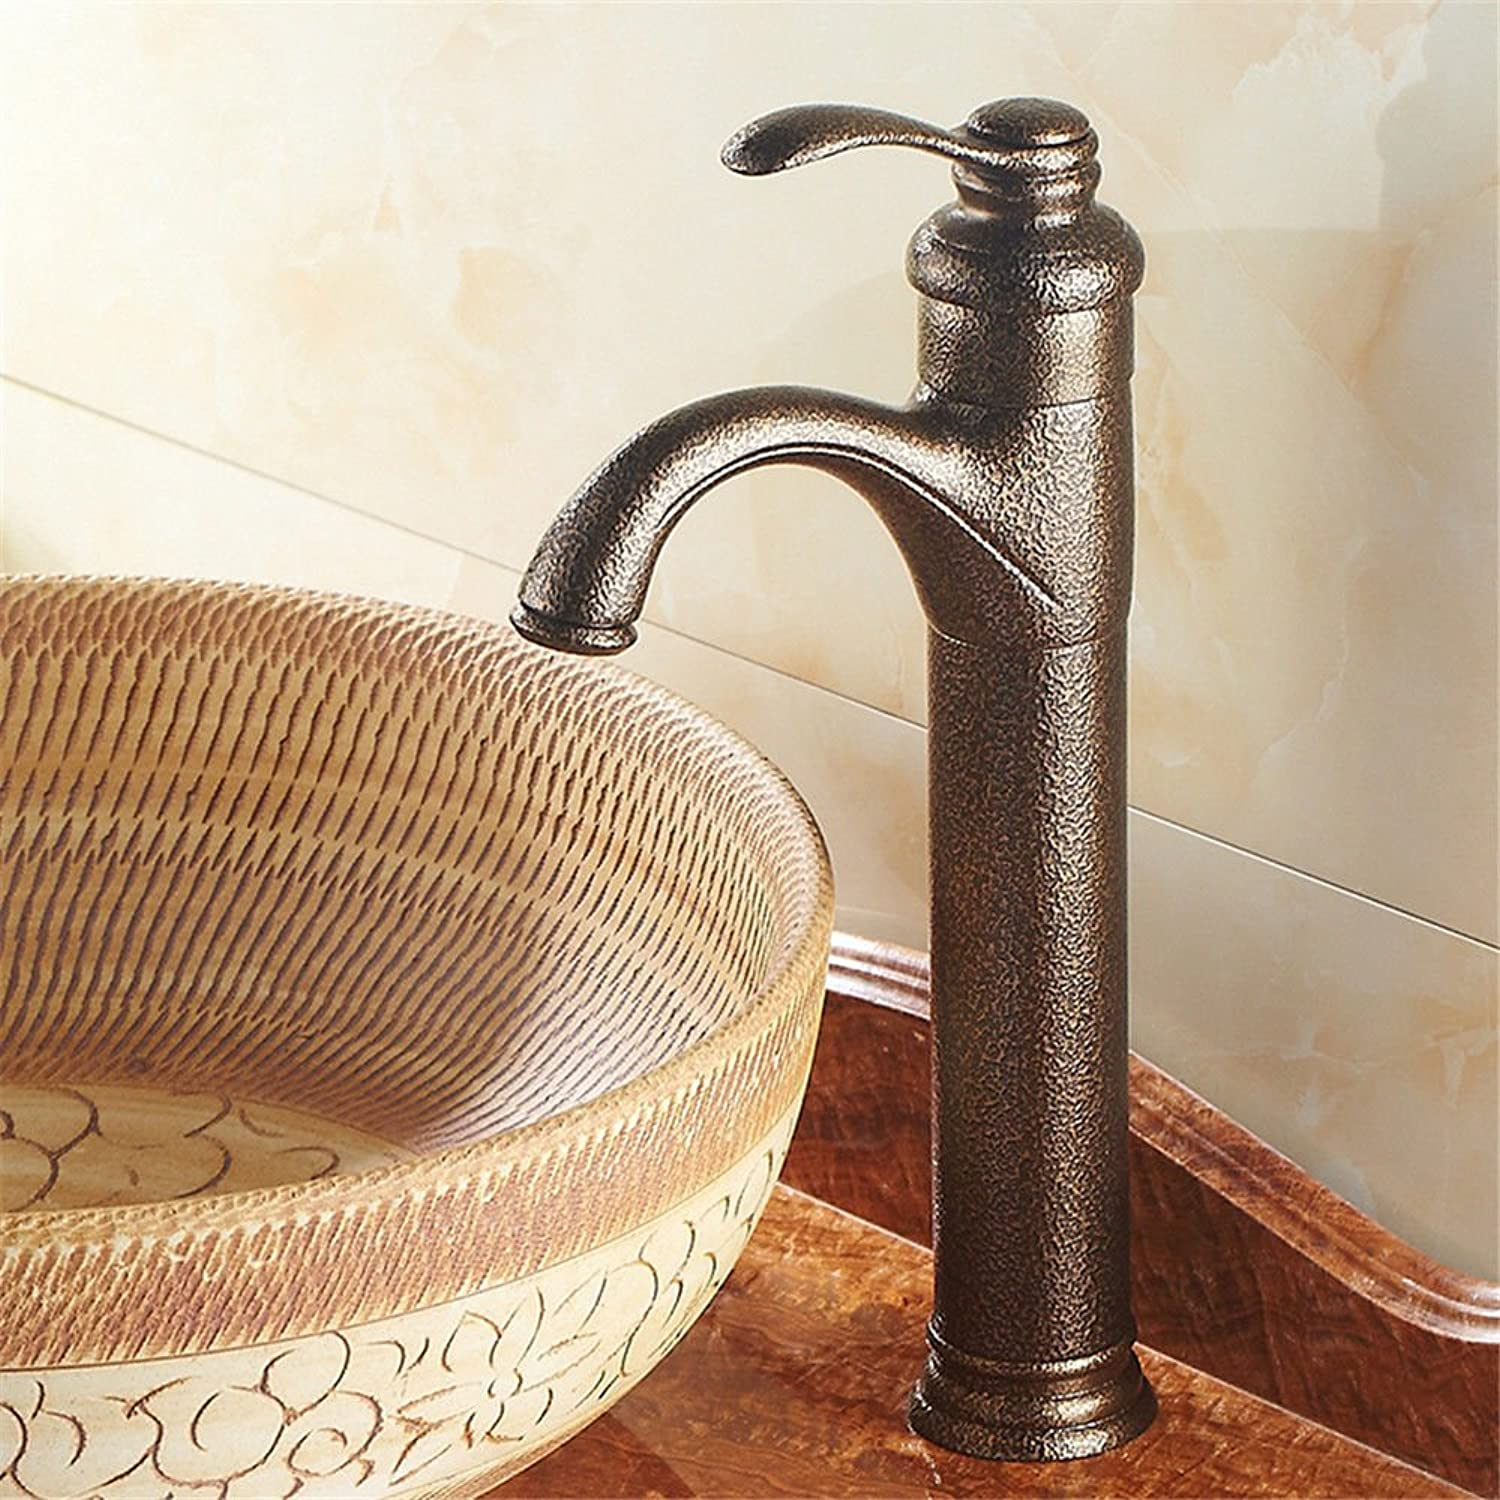 Modern simple simple simple copper hot and cold kitchen sink taps kitchen faucet Antique above counter basin faucet copper hot and cold single handle single hole basin faucet Suitable for bathroom kitchen sinks 268662